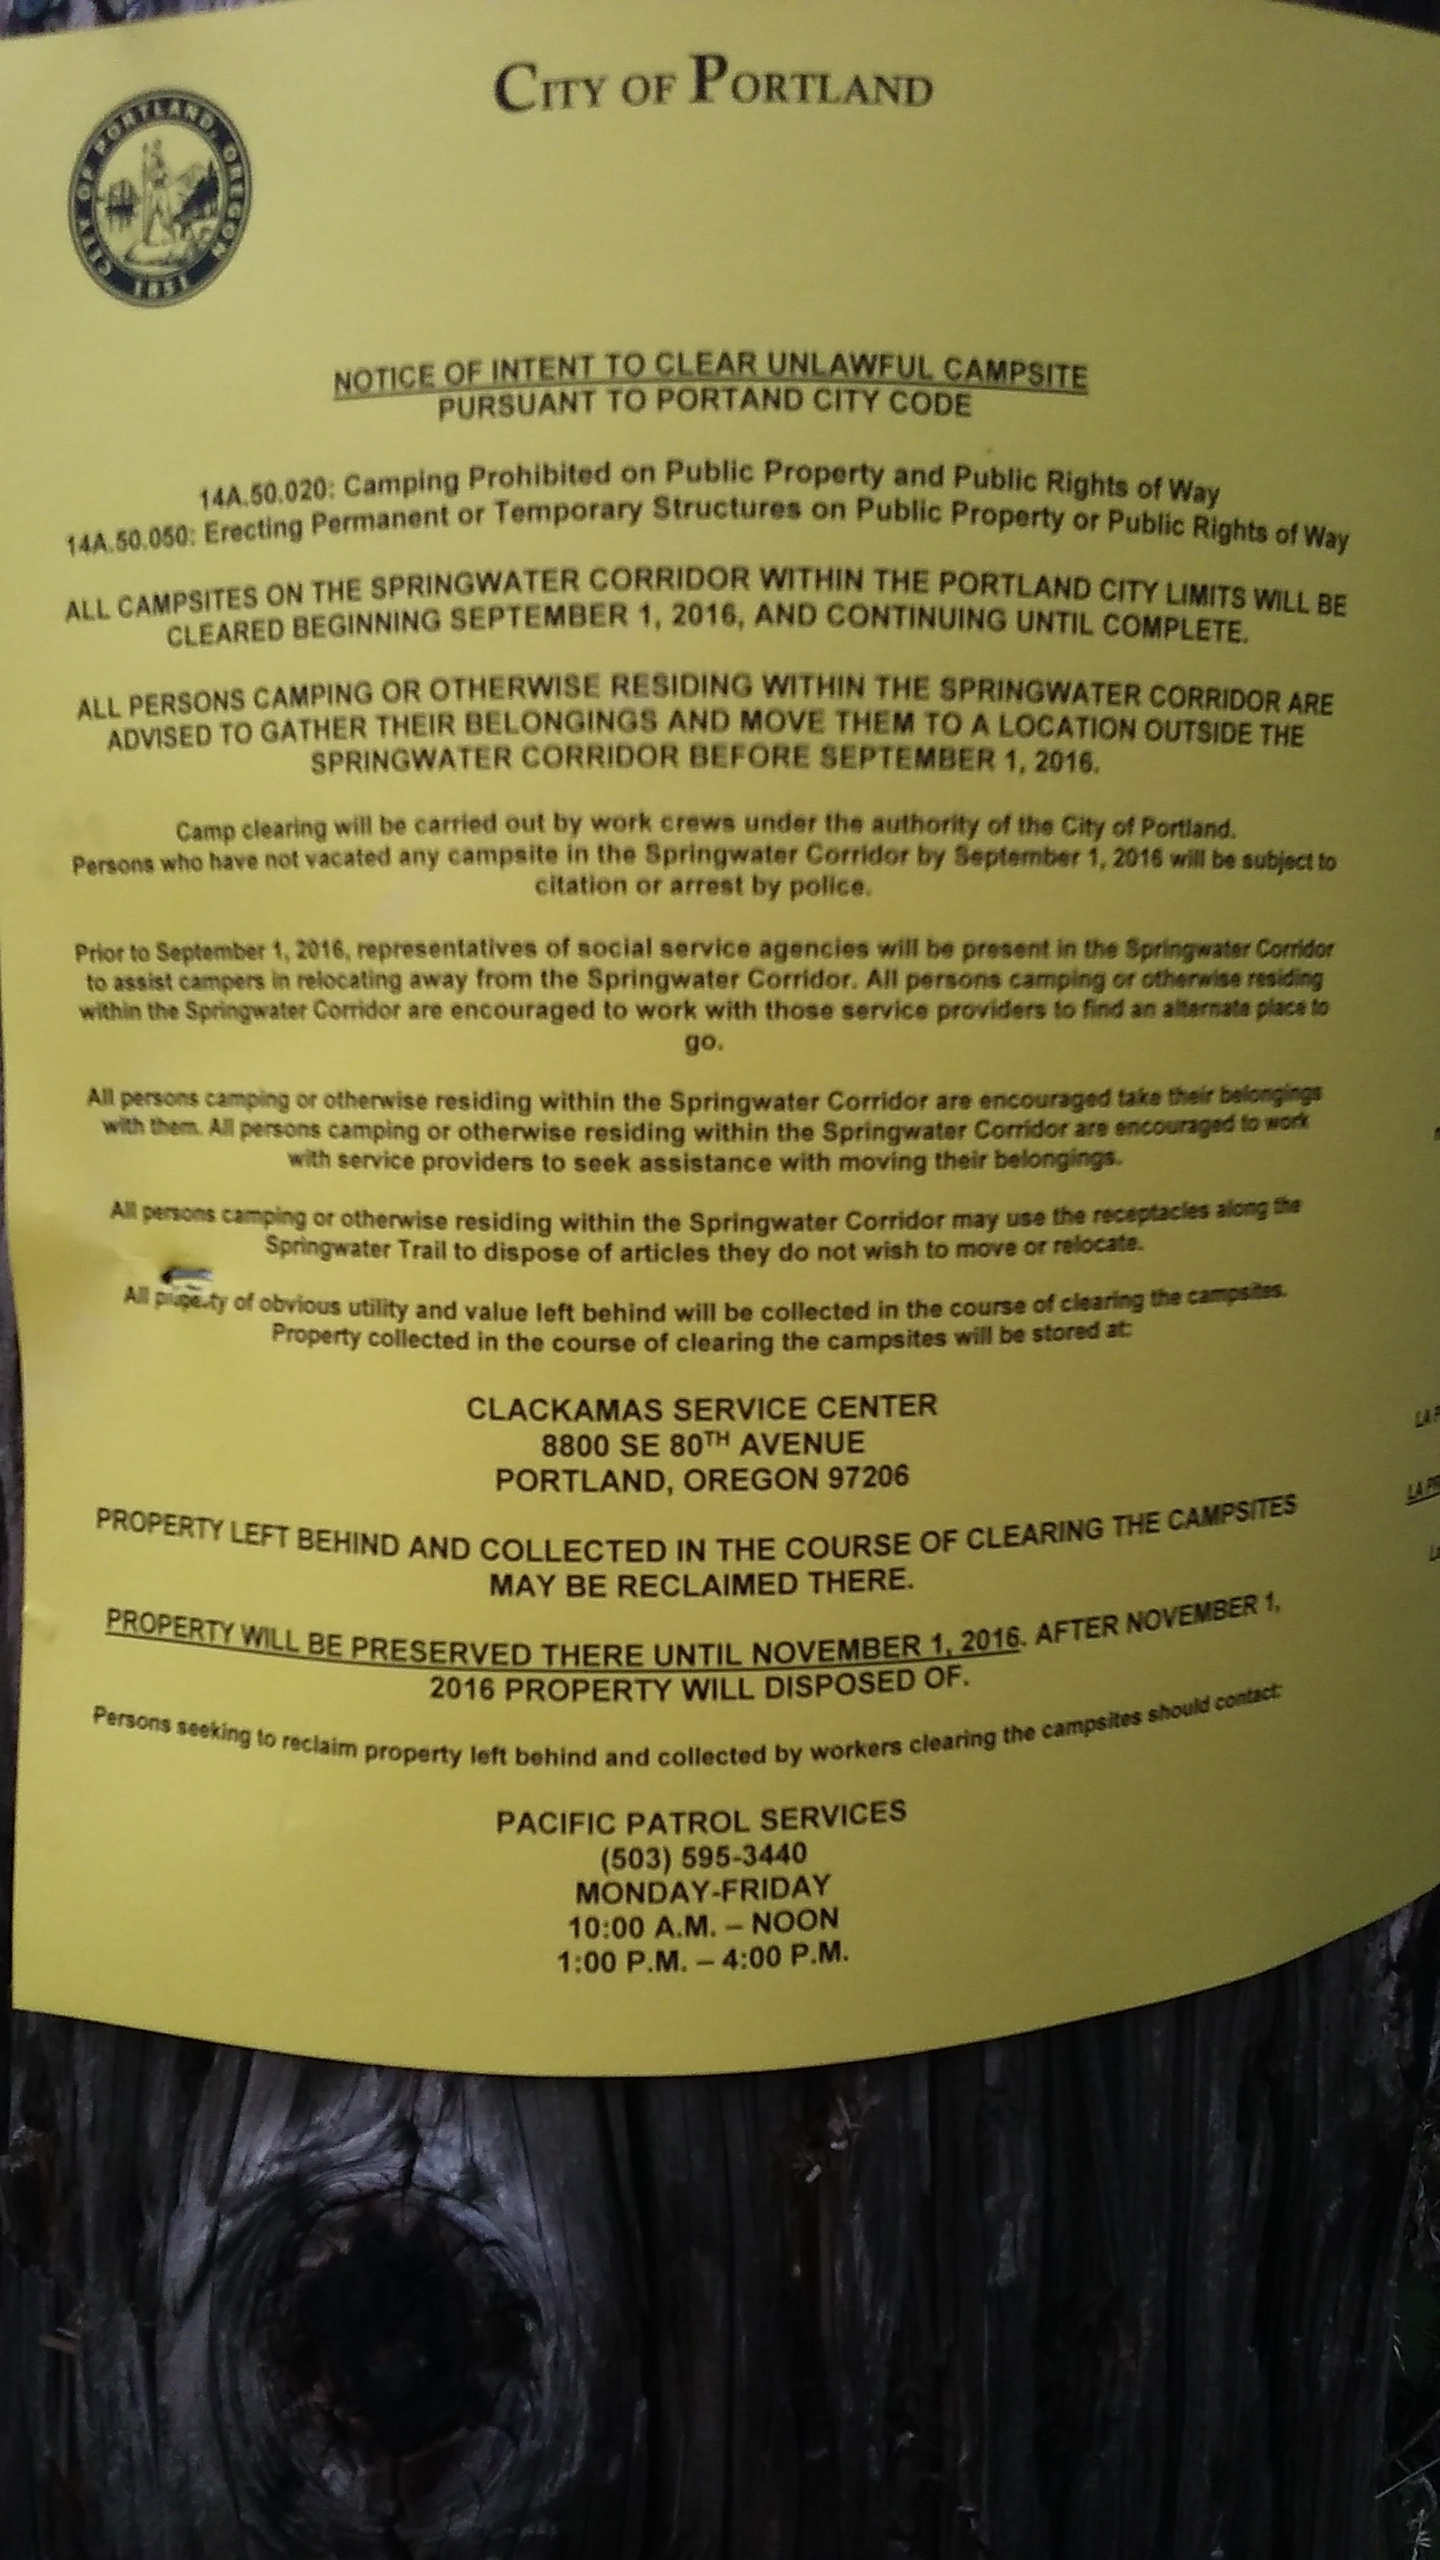 eviction notice for campers.jpg